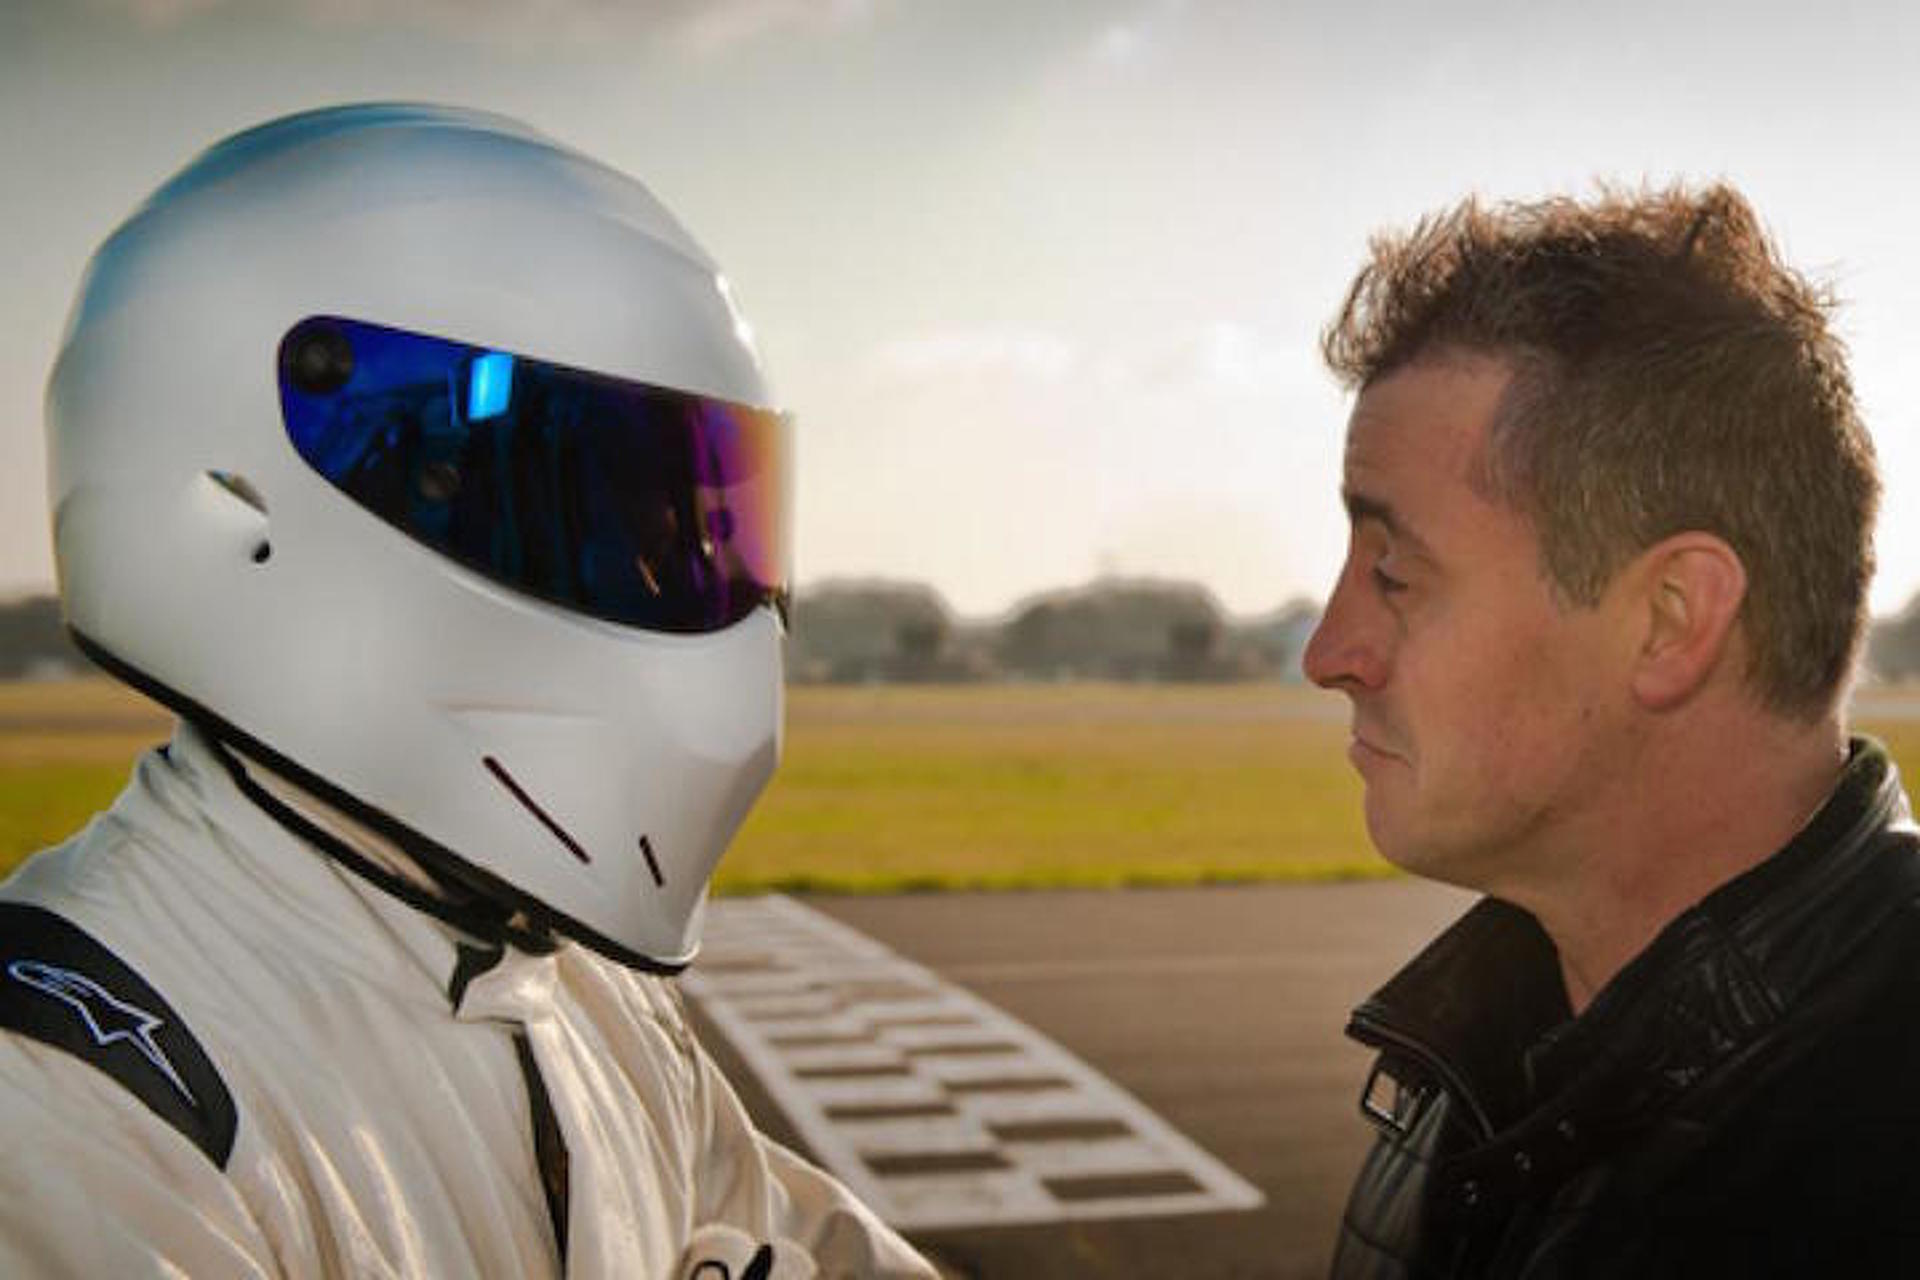 New Season of 'Top Gear' Delayed—Is There Trouble in Paradise?